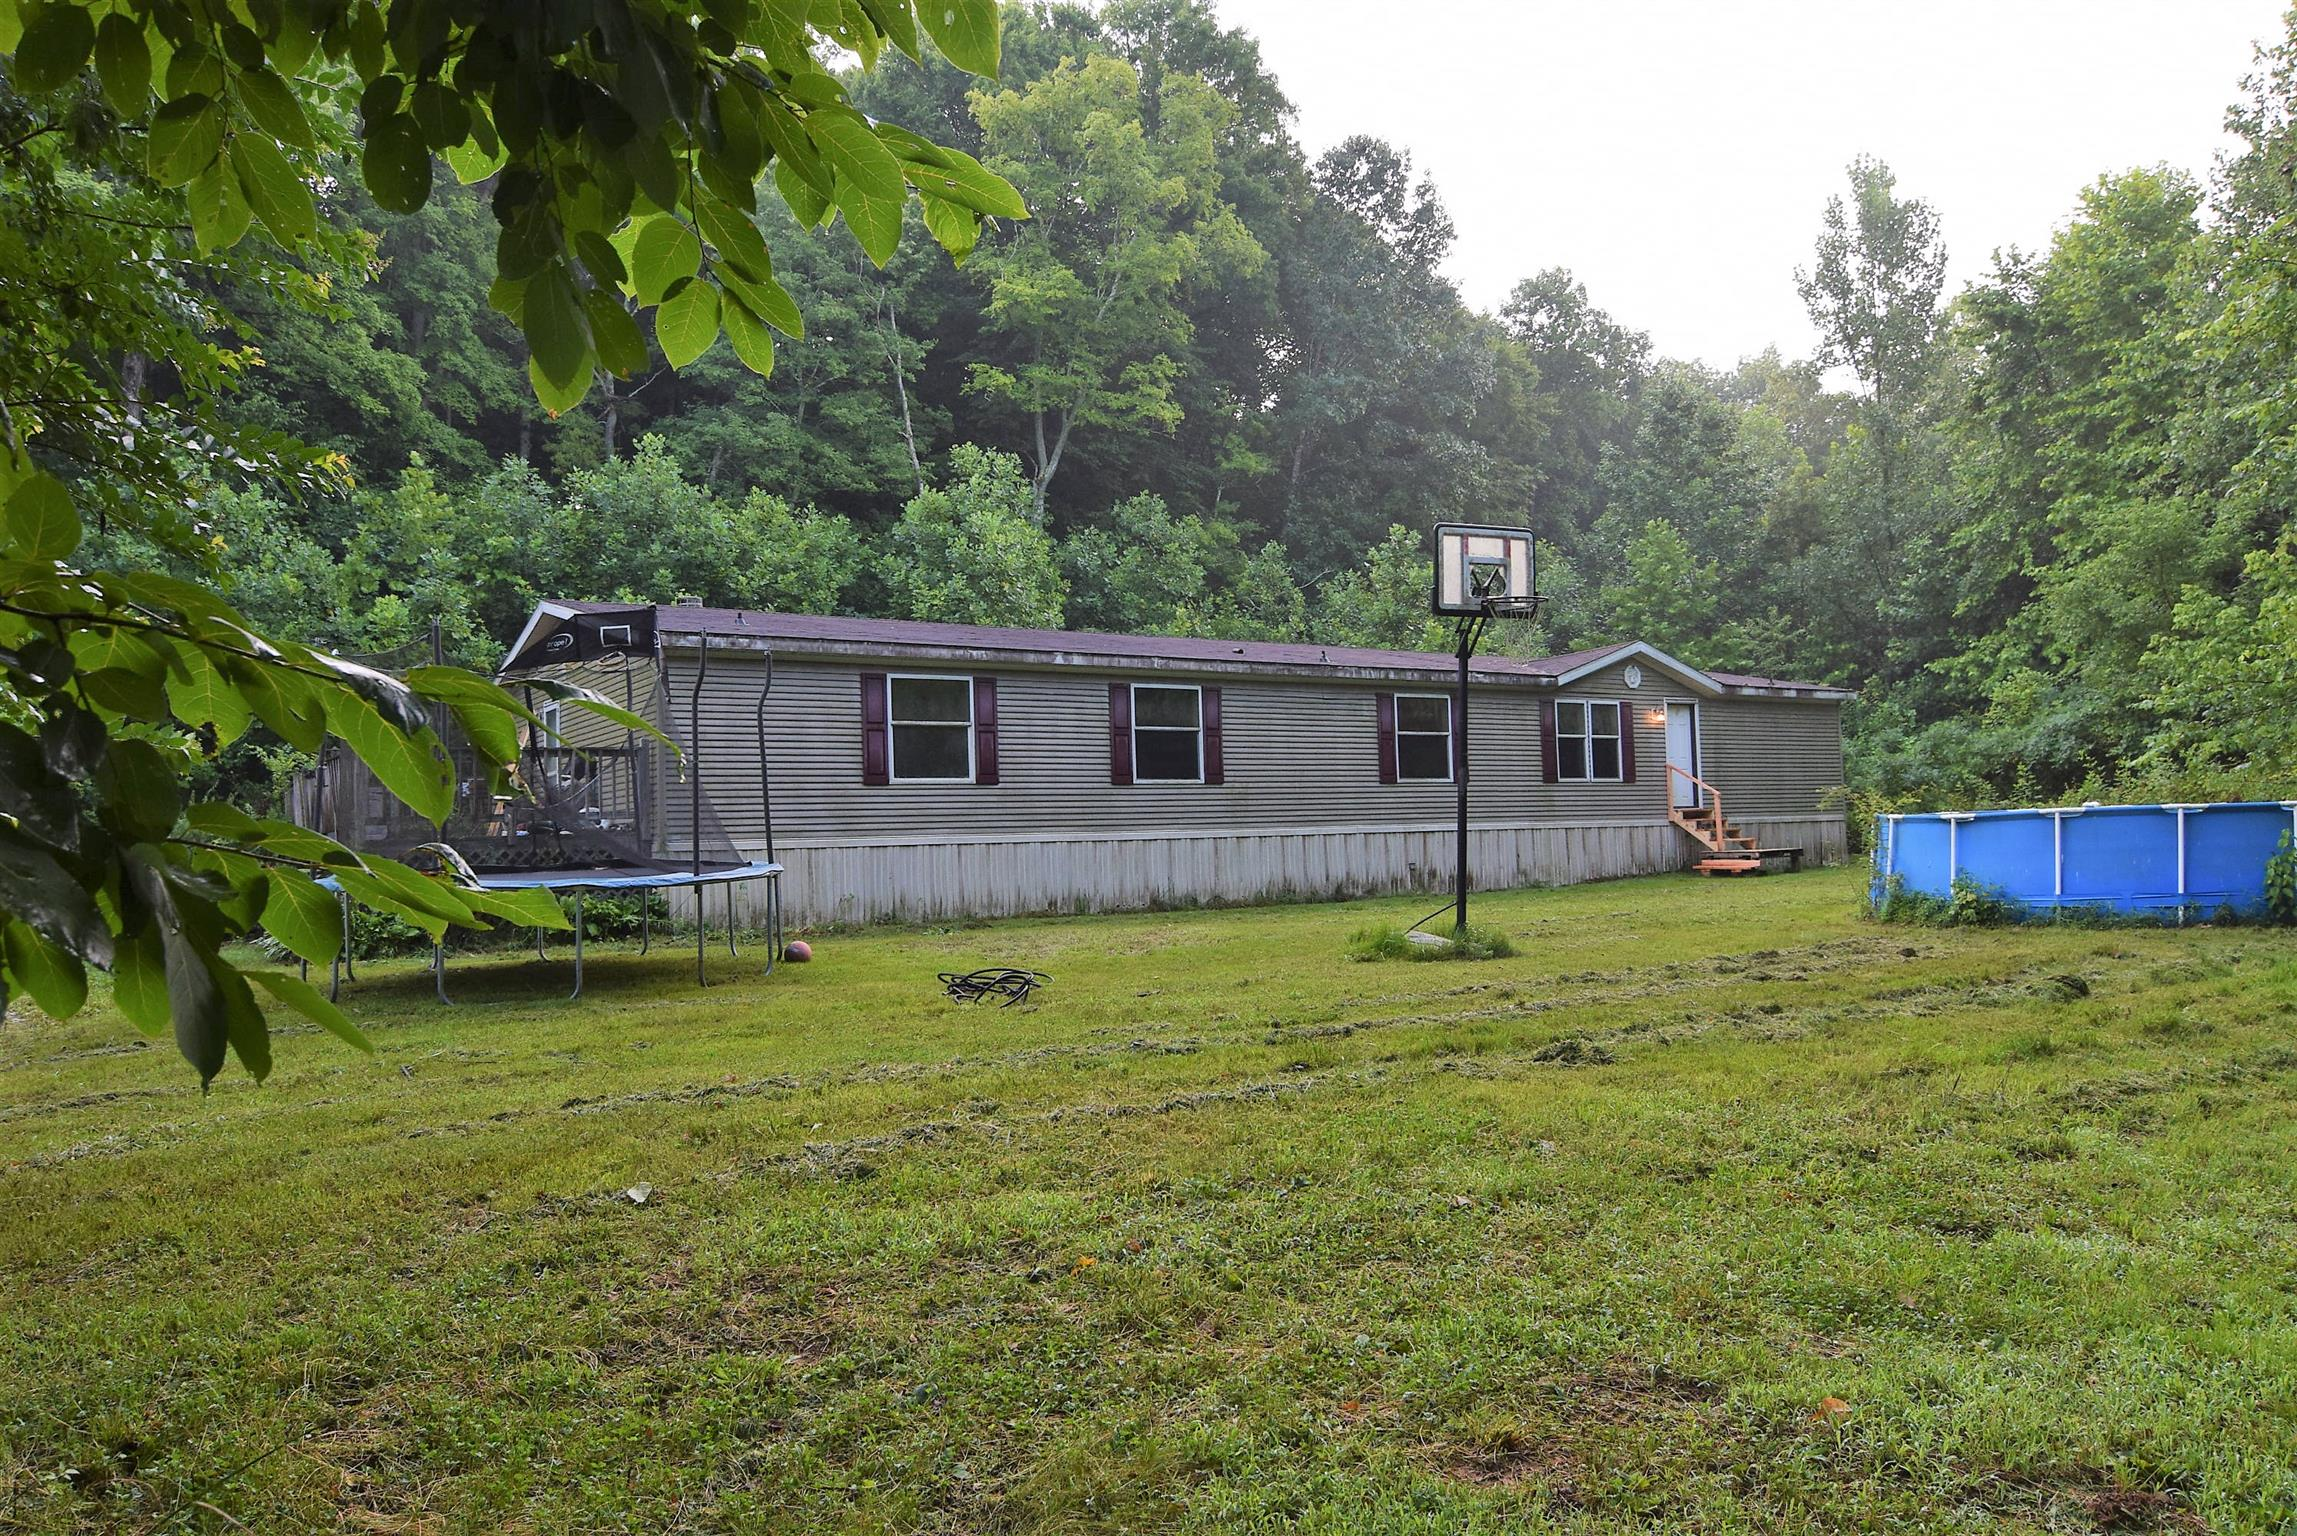 13310 Johnson Mill Rd, Crofton, KY 42217 - Crofton, KY real estate listing